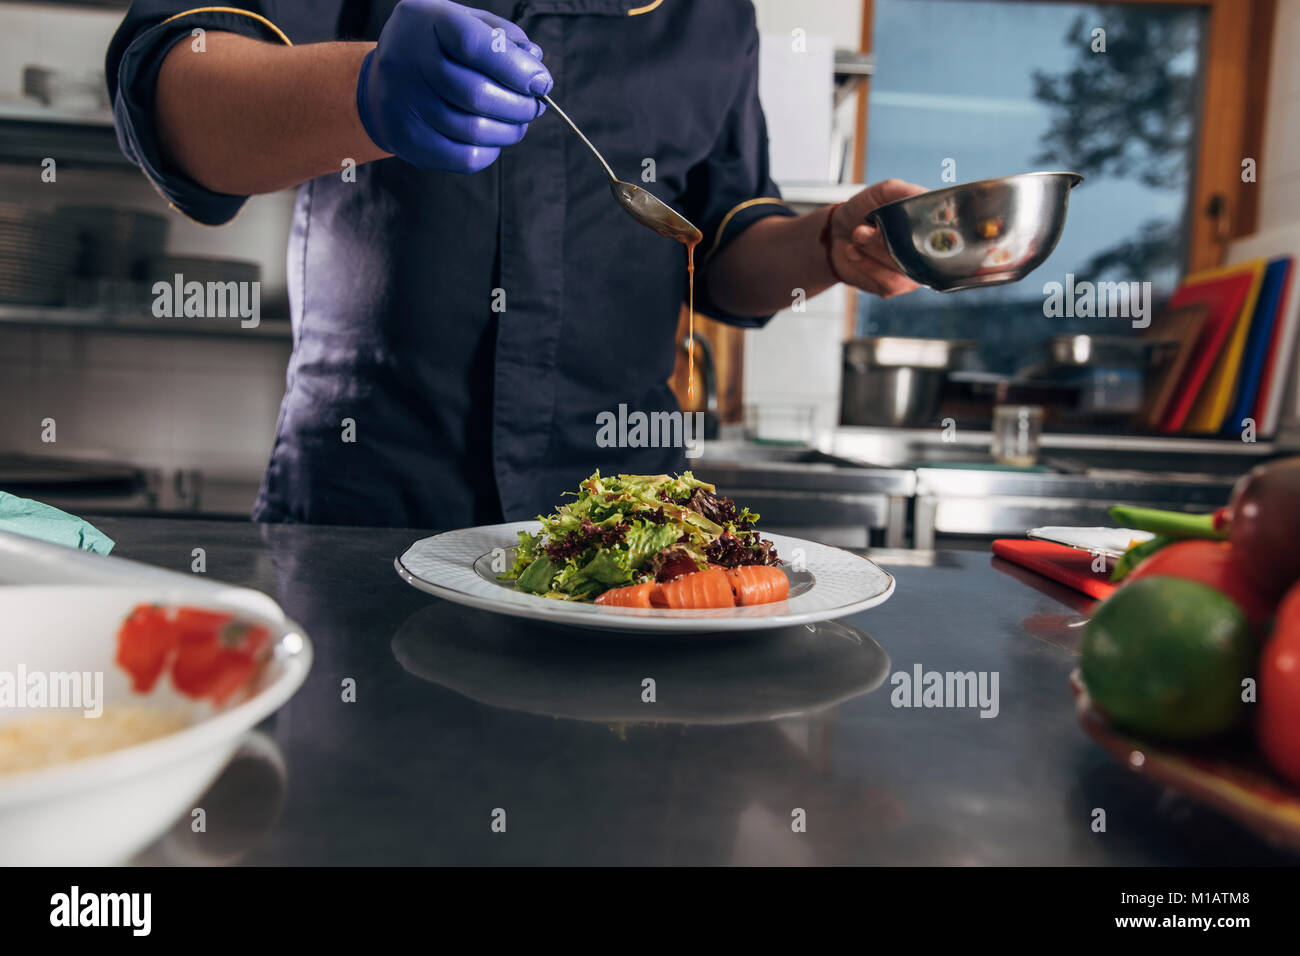 cropped shot of chef pouring sauce onto salad - Stock Image